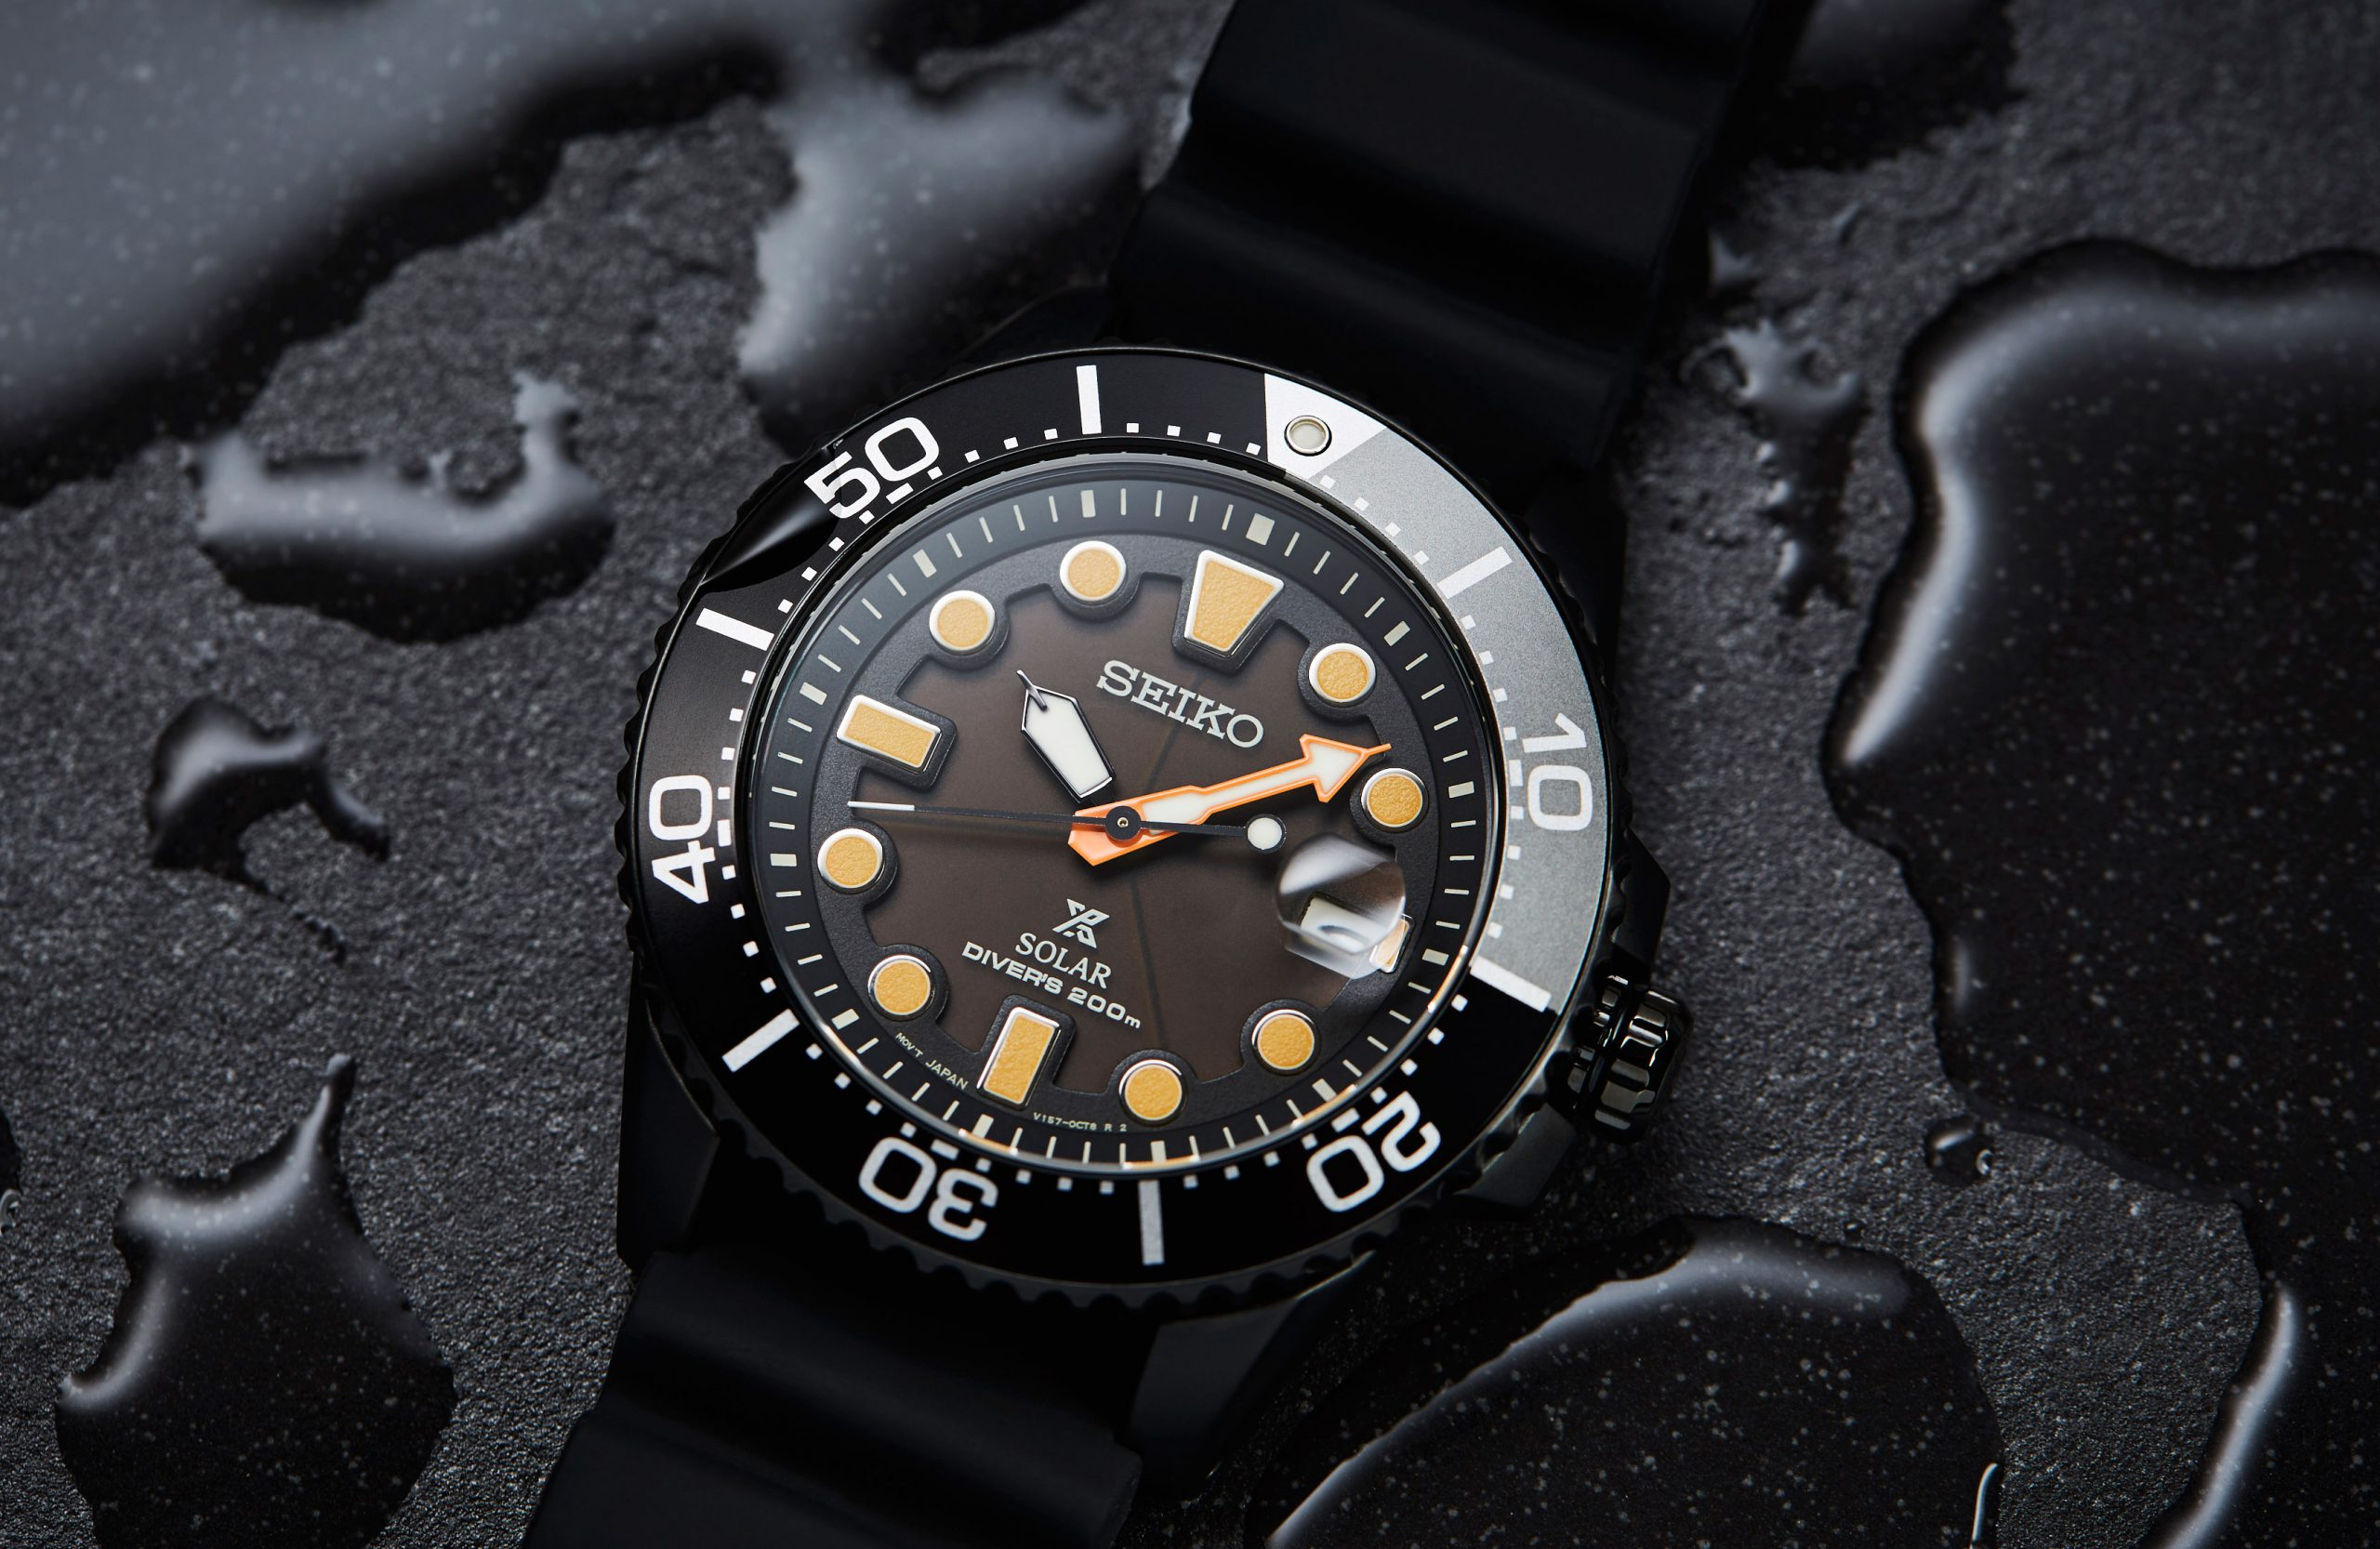 EDITOR'S PICK: Need to grab & go? Take a look at these Seiko Prospex divers